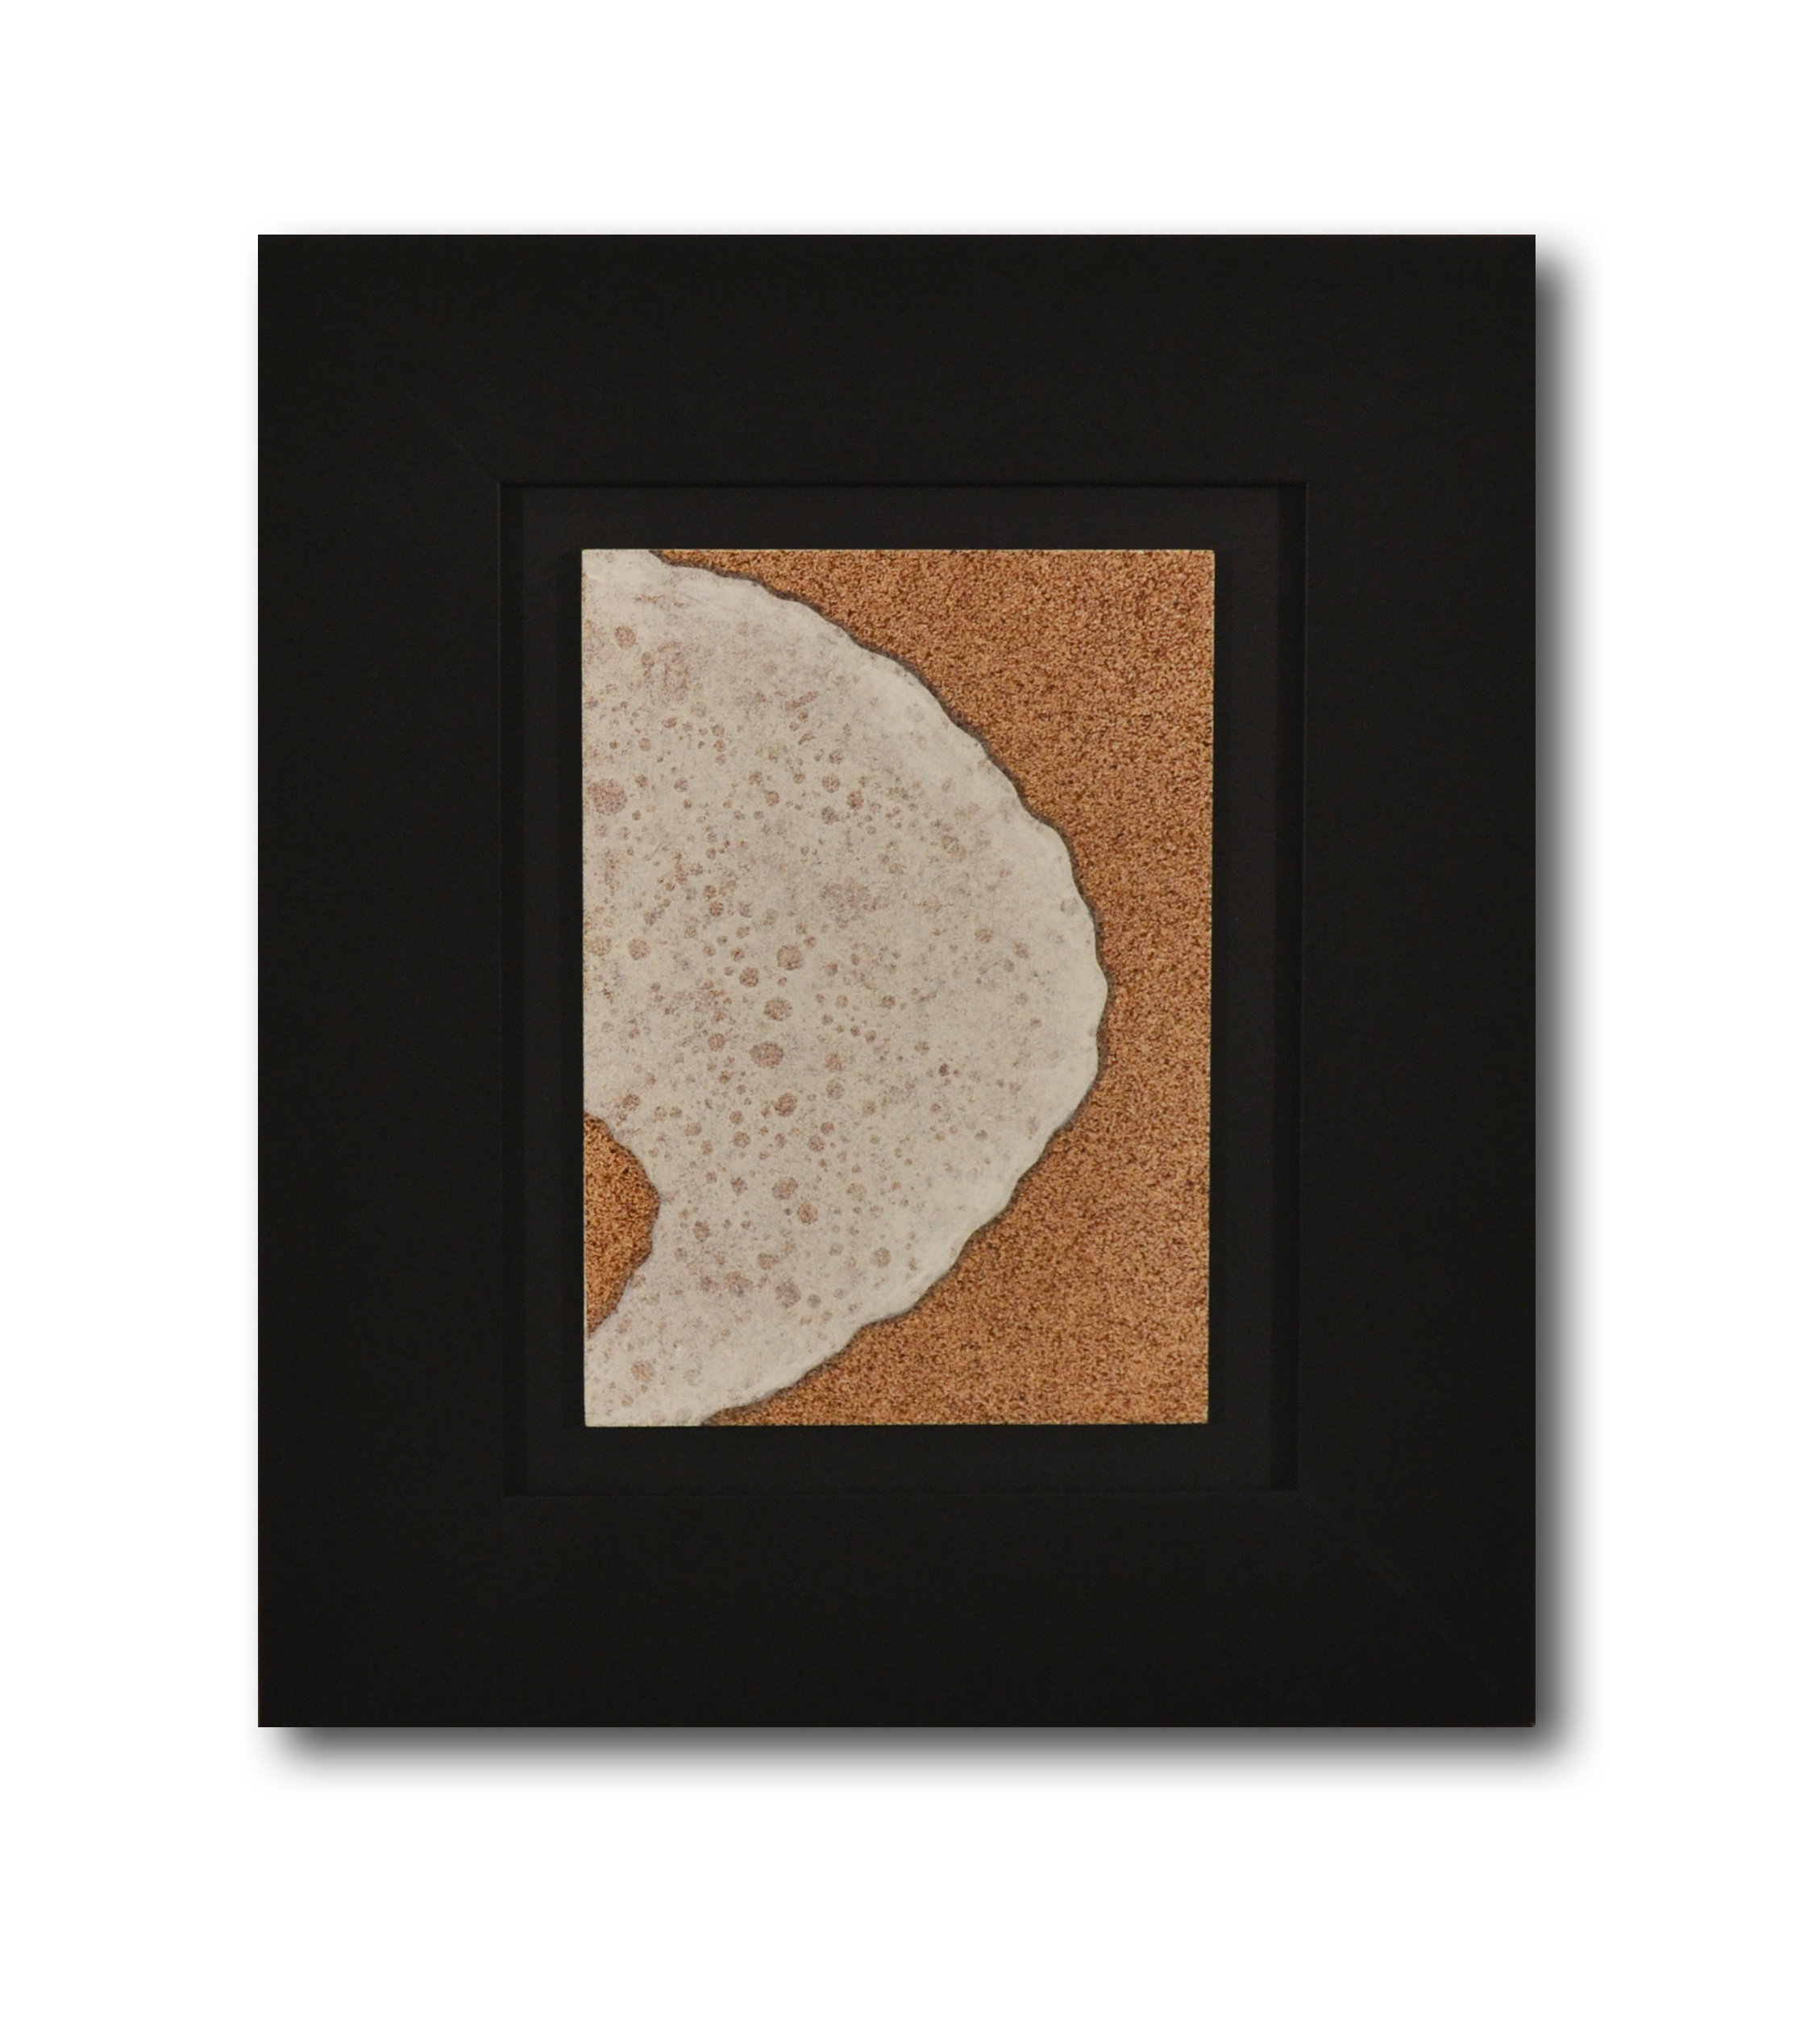 """Title: Dune 1 Artist: Mark Travers Year: 2011 Medium: Oil and acrylic on panel Size: 12"""" x 14"""" (including frame)"""